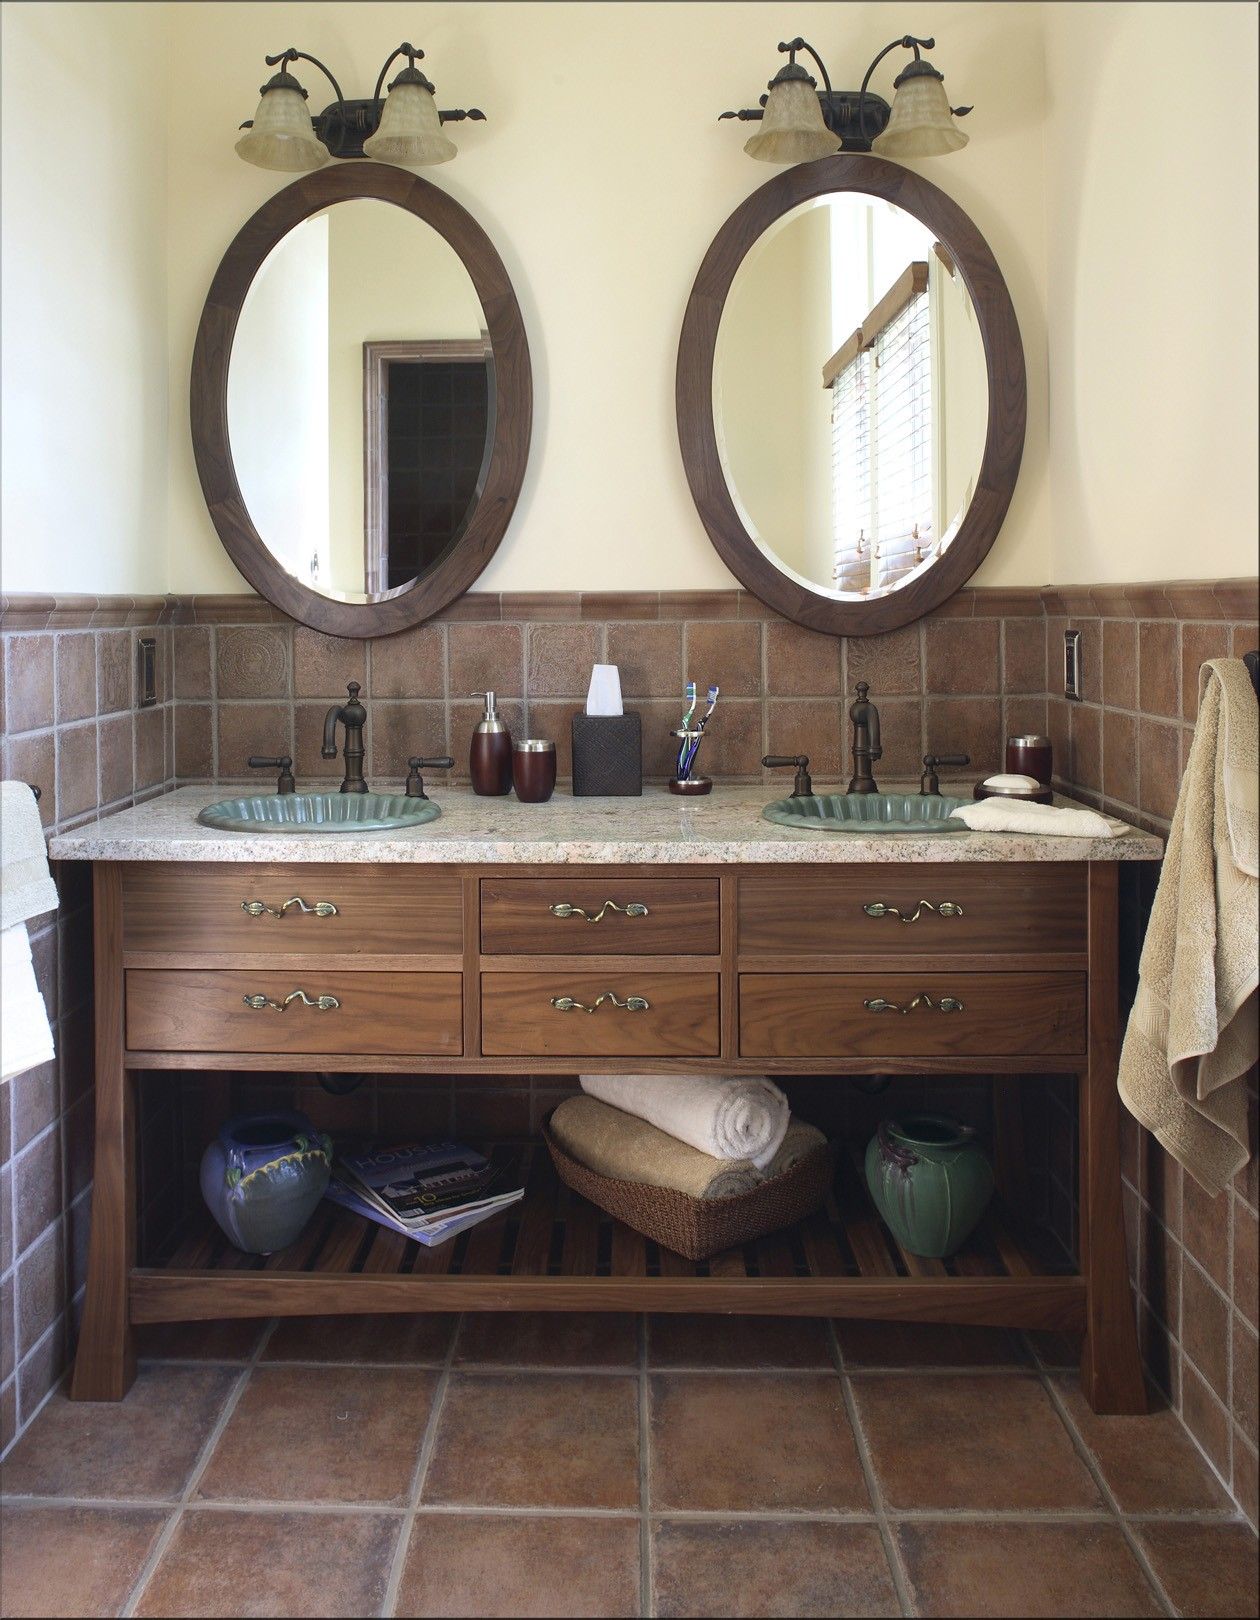 Adorable Vintage Bathroom Design With Rustic Wooden Vanity And Twin Woodne Framed Wall Mirror On Brown